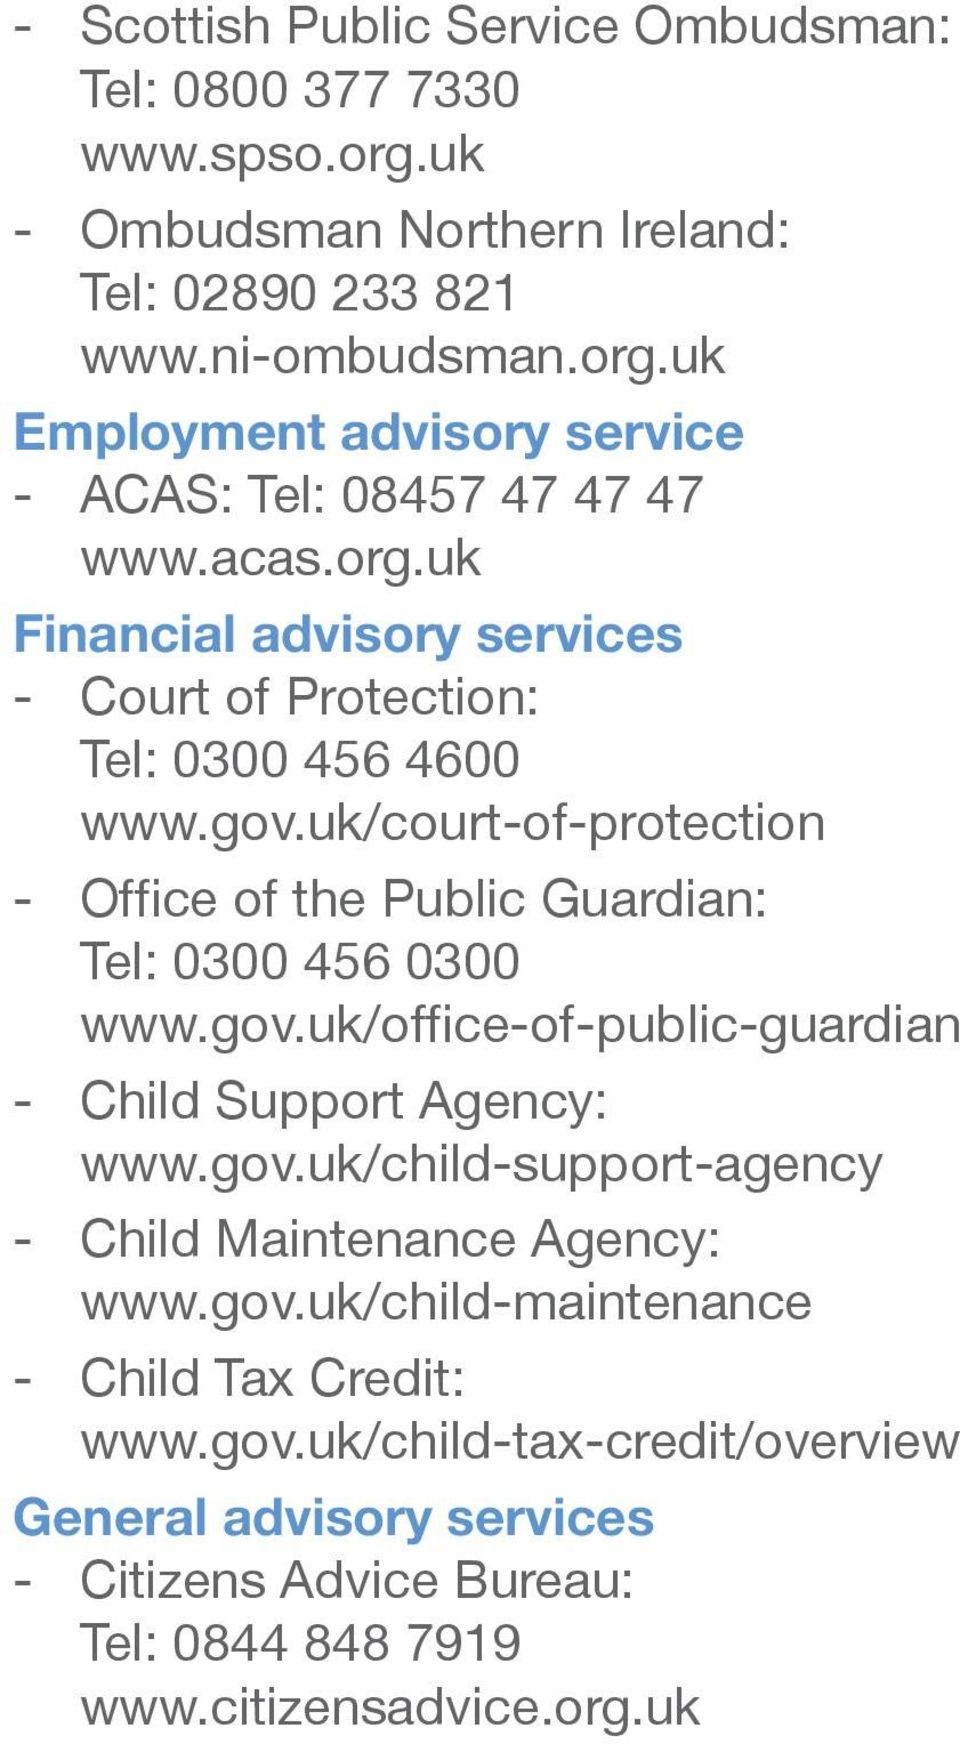 gov.uk/office-of-public-guardian - Child Support Agency: www.gov.uk/child-support-agency - Child Maintenance Agency: www.gov.uk/child-maintenance - Child Tax Credit: www.